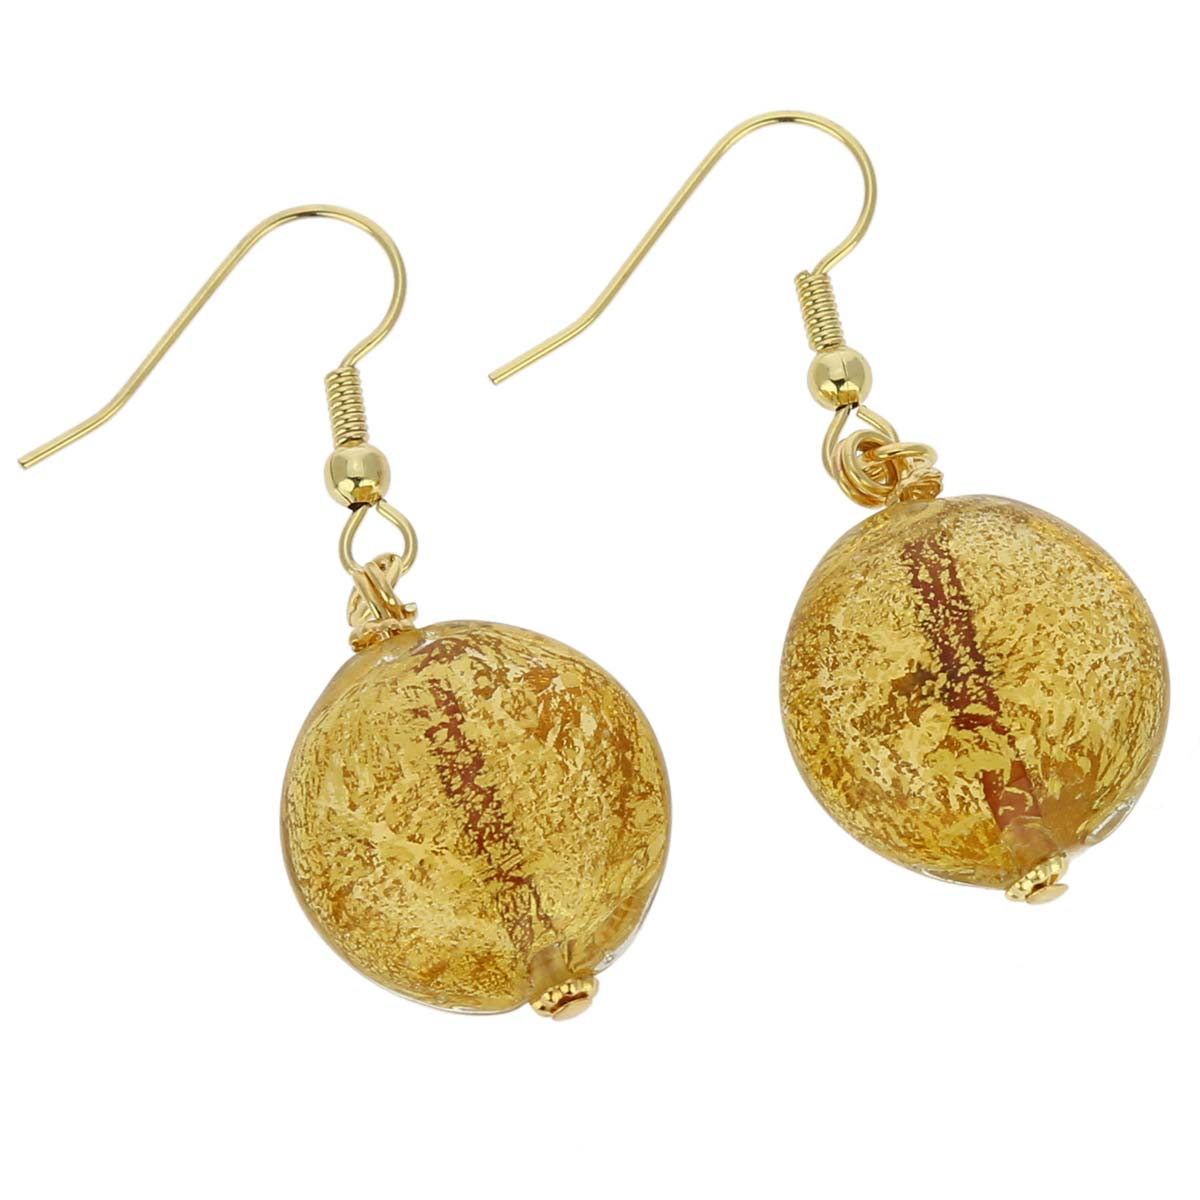 Ca D\'Oro earrings - yellow gold